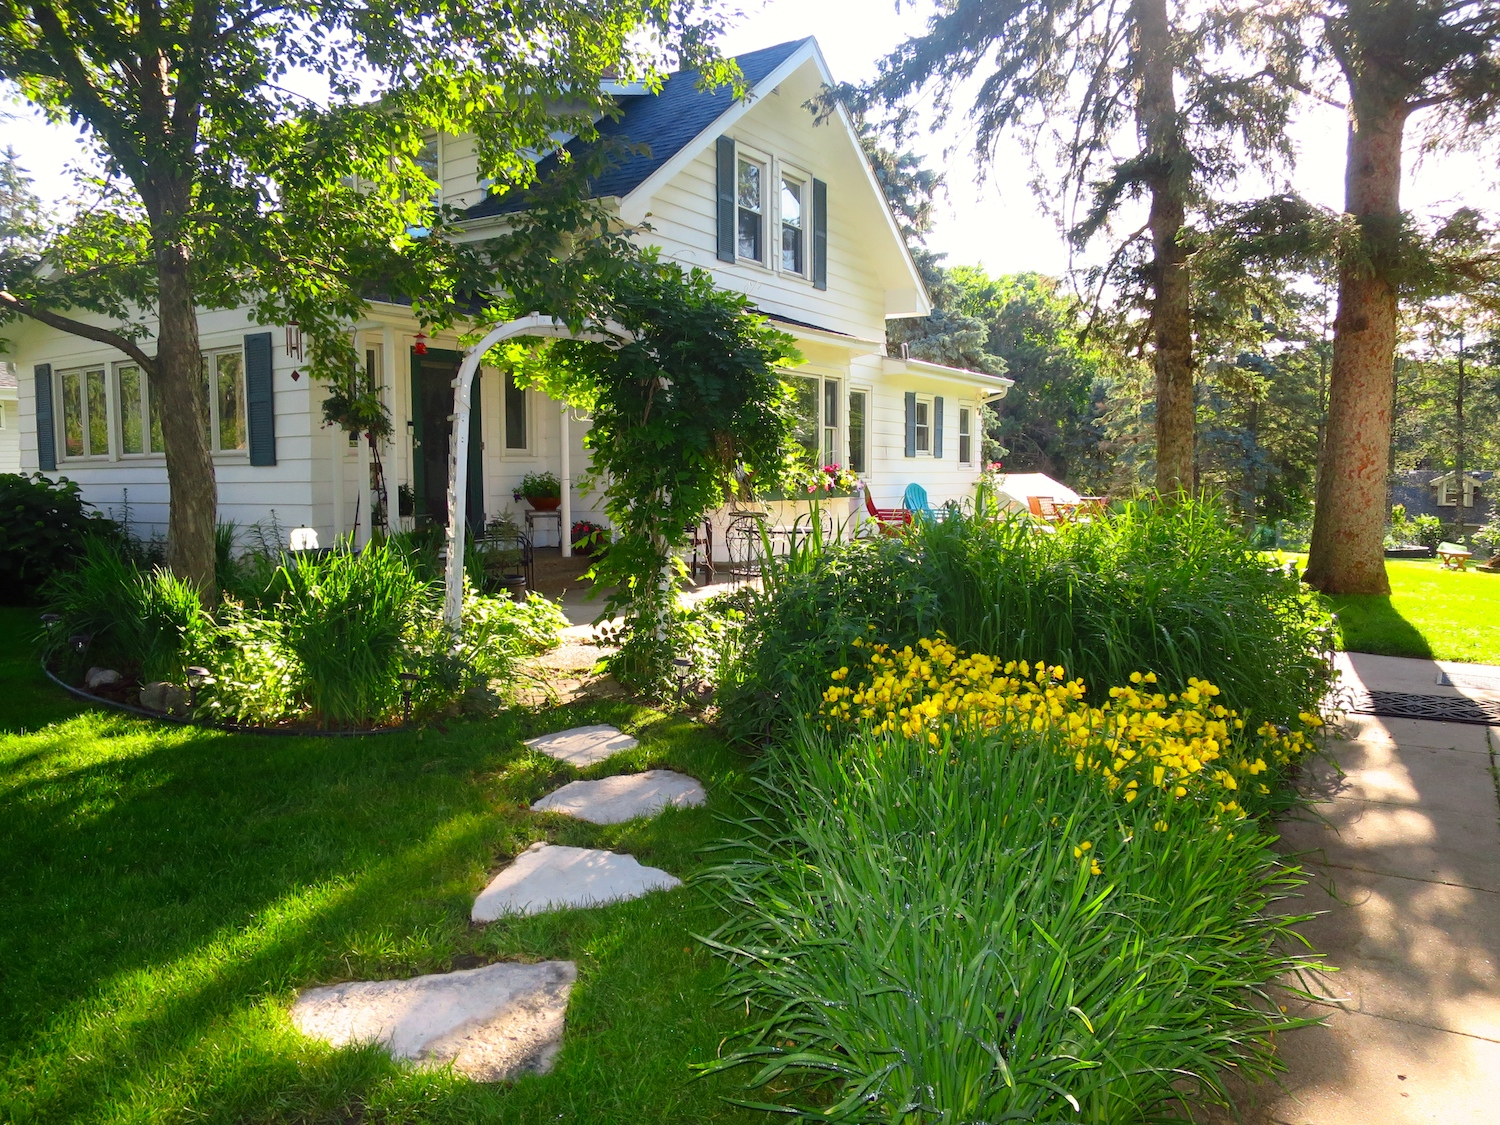 older yellow home with garden in front